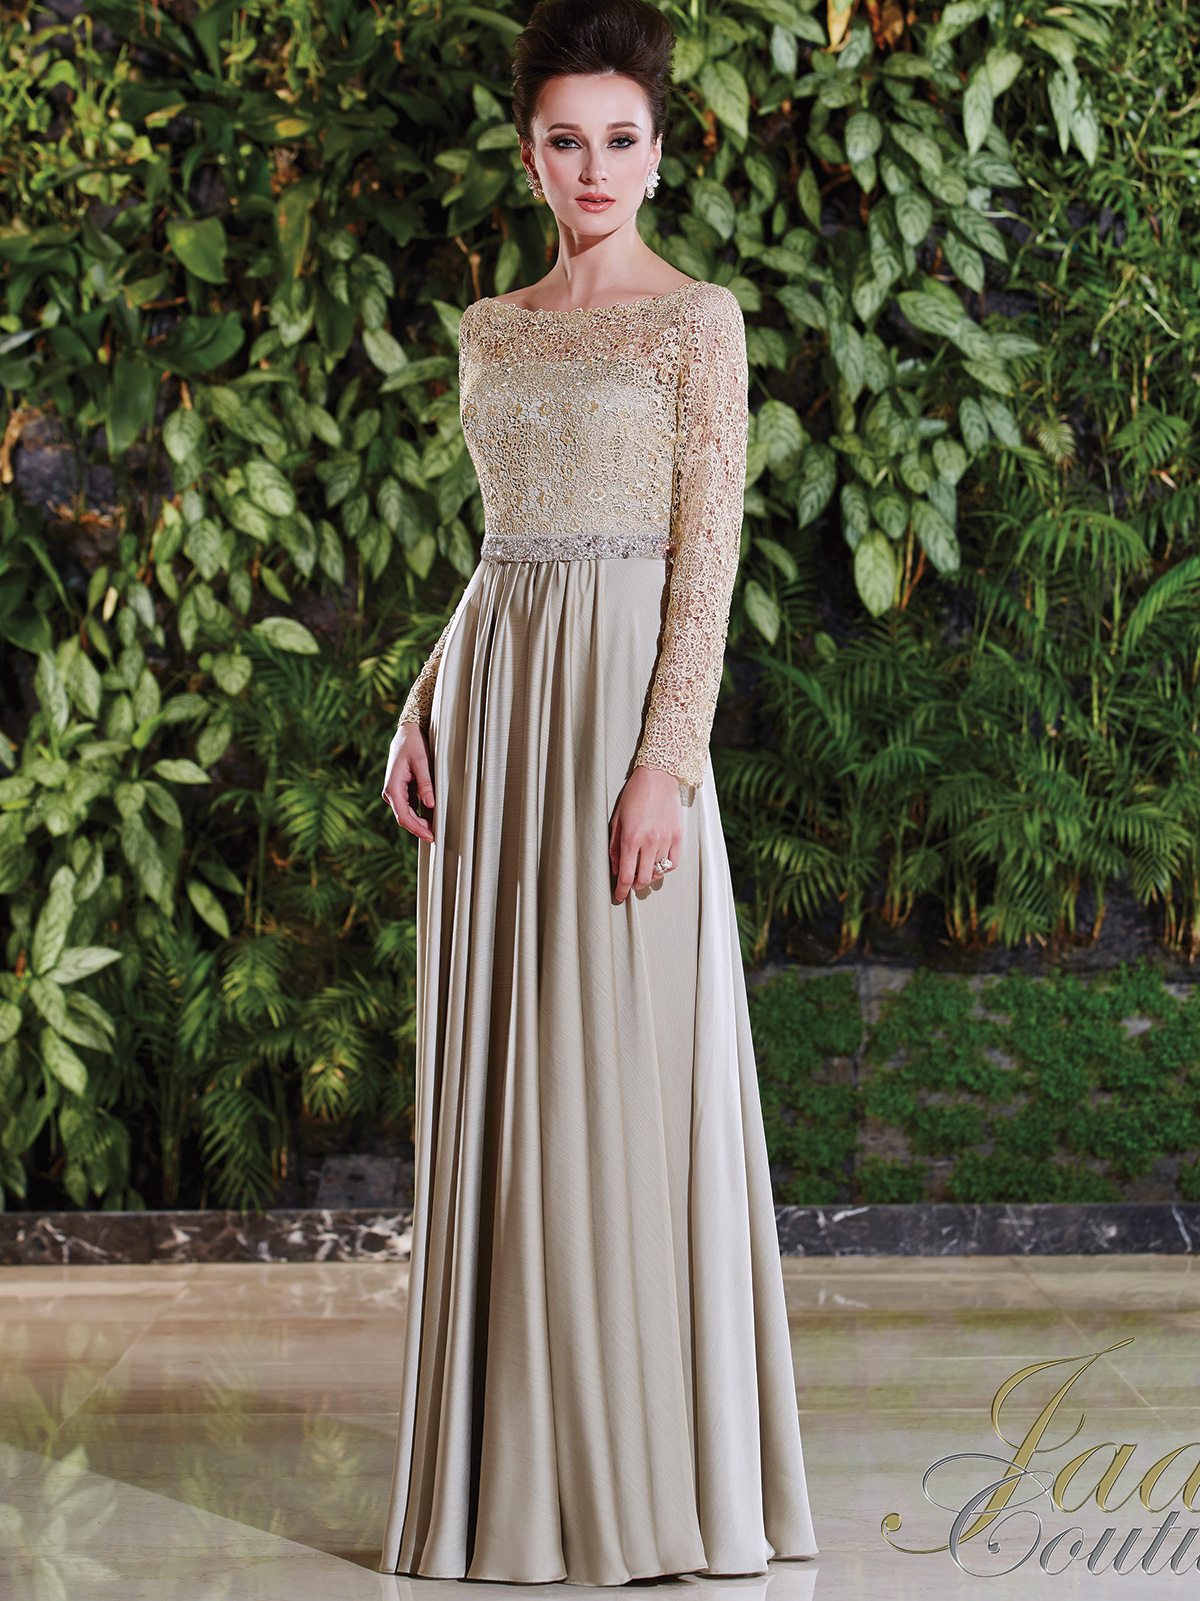 Mother of the groom long dresses dress yp for Long dress for wedding mother of the bride